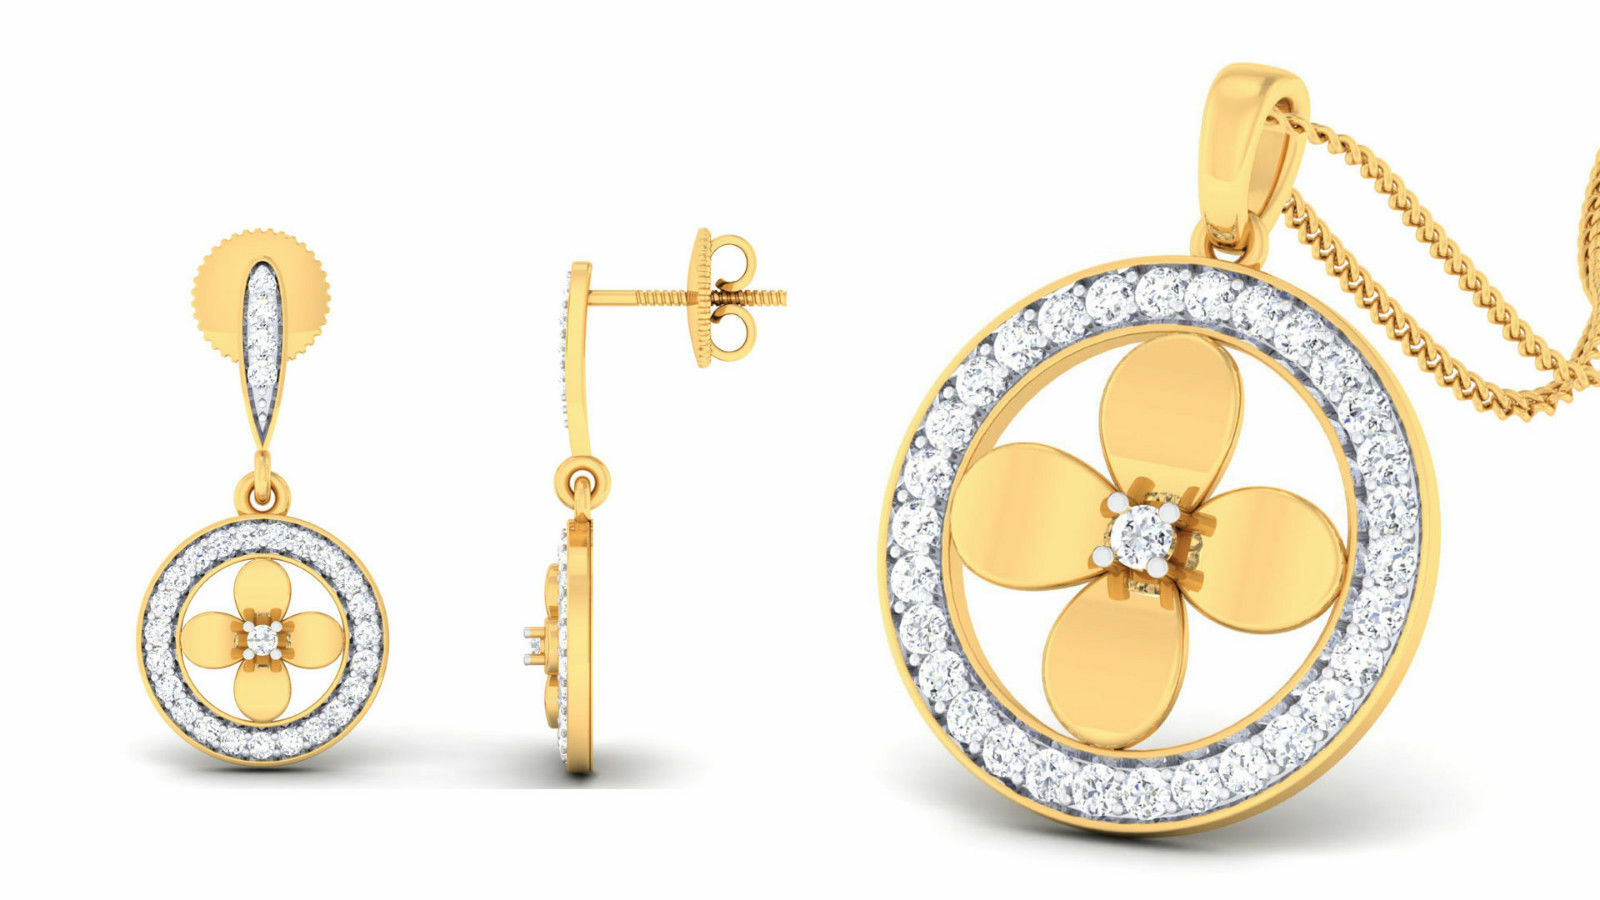 Pave 1.09 Cts Natural Diamonds Pendant Earrings Set In Solid Certified 14K gold